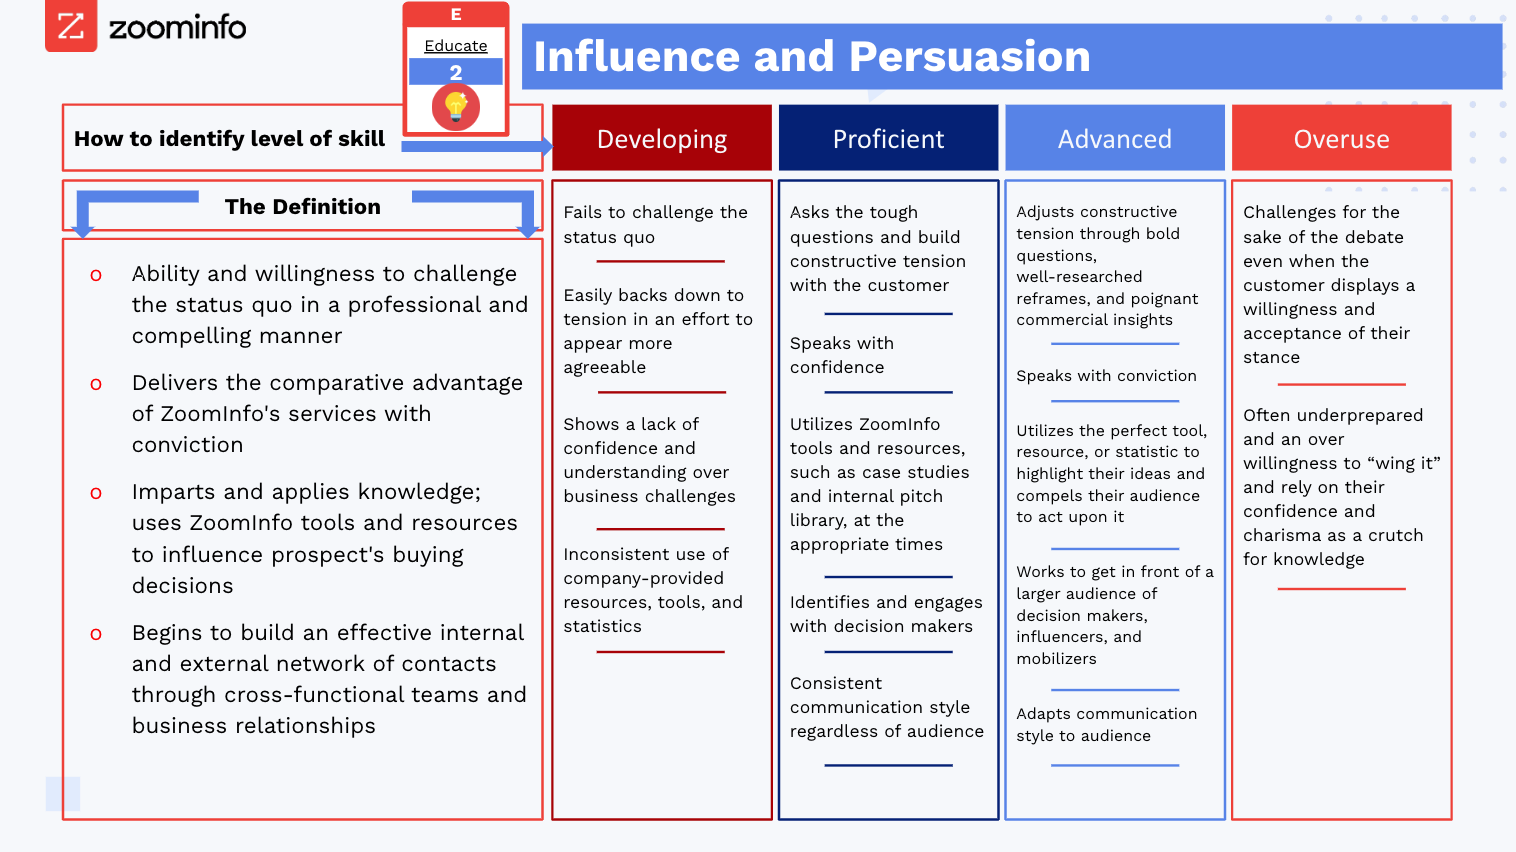 Chart showing influence and persuasion skills for salespeople.